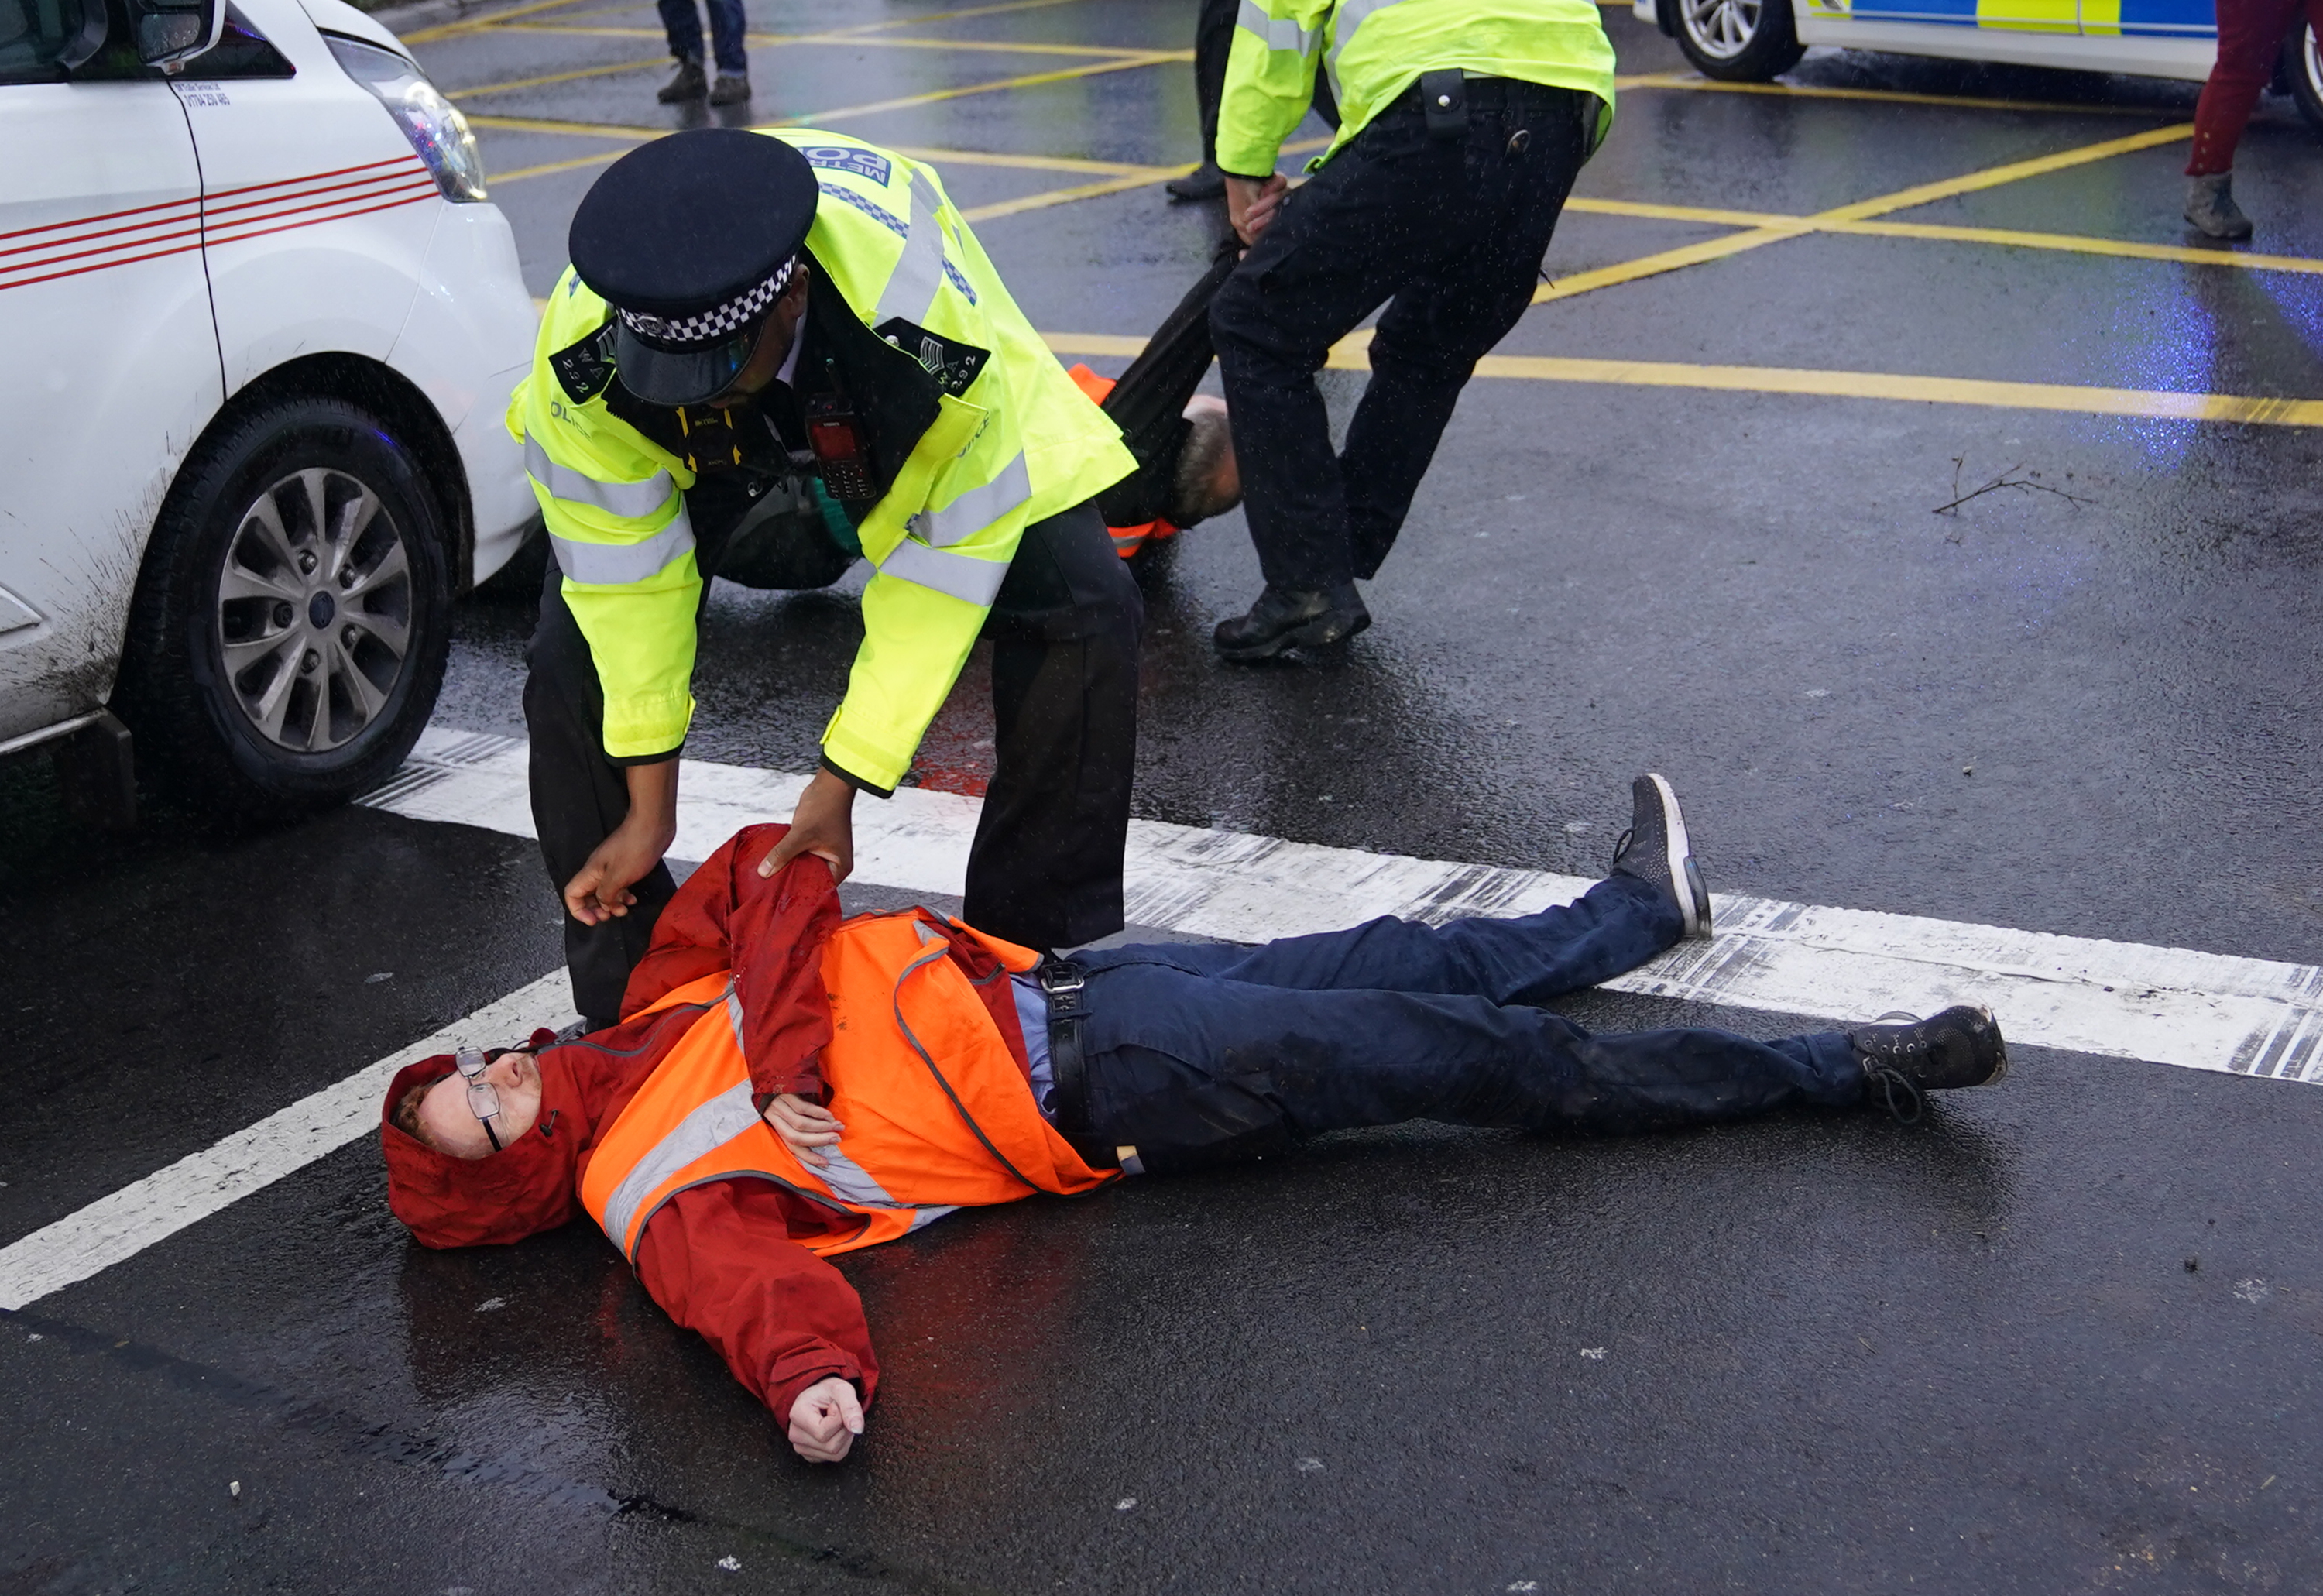 <p>A police officer detains a protester from Insulate Britain occupying a roundabout leading from the M25 motorway to Heathrow Airport in London. Picture date: Monday September 27, 2021.</p>